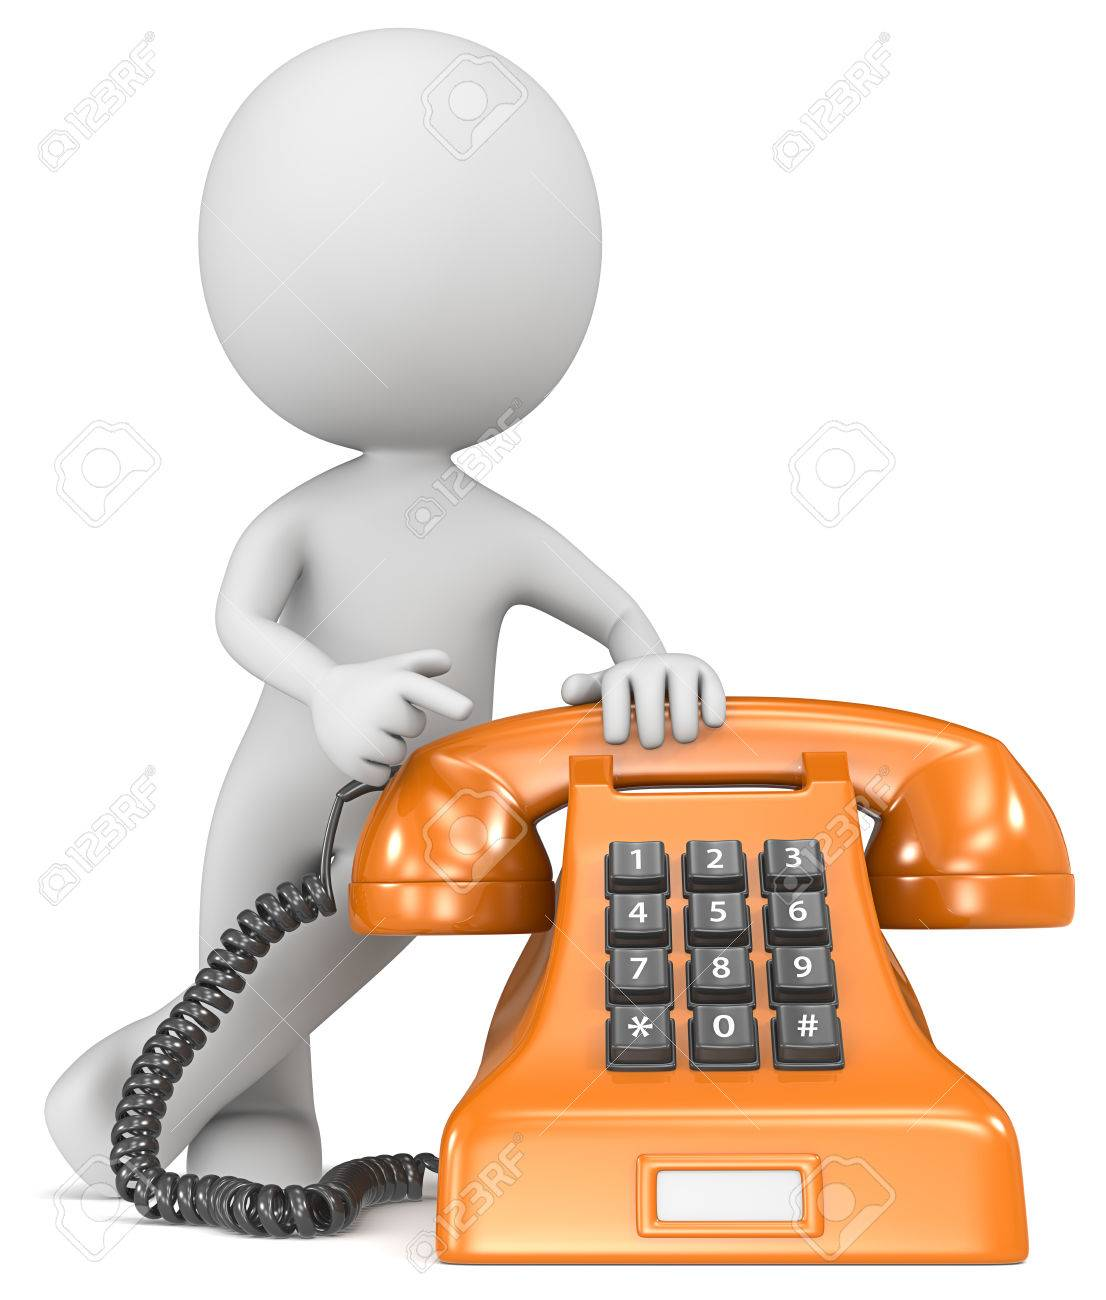 Call us  The Dude pointing at a classic telephone  Orange with white label Stock Photo - 23123184